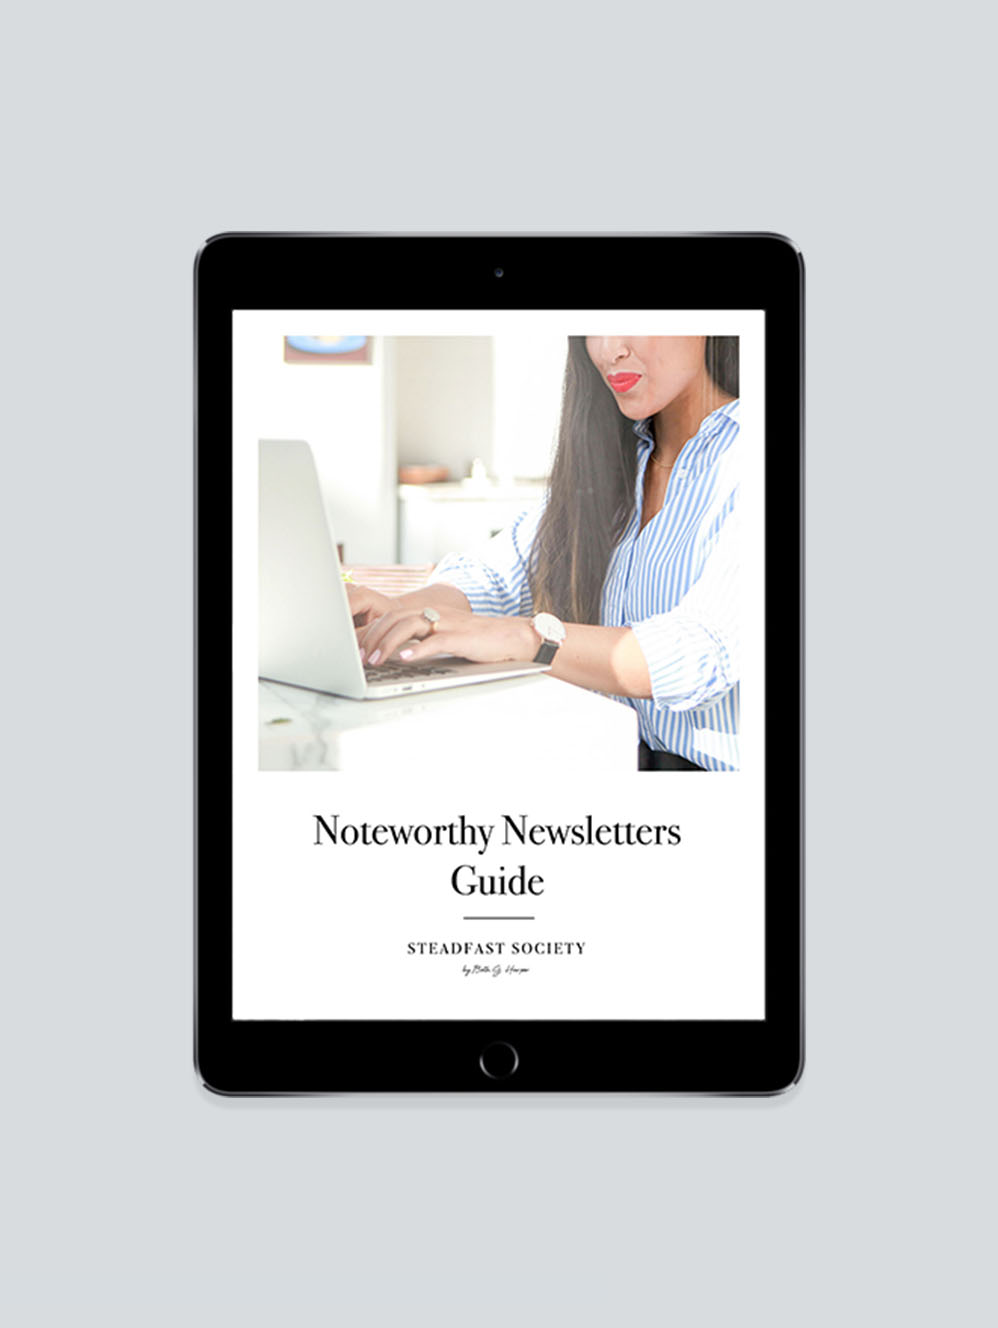 <p><strong>Noteworthy Newsletters Guide</strong>$99<a href=/noteworthy-newsletters>More →</a></p>